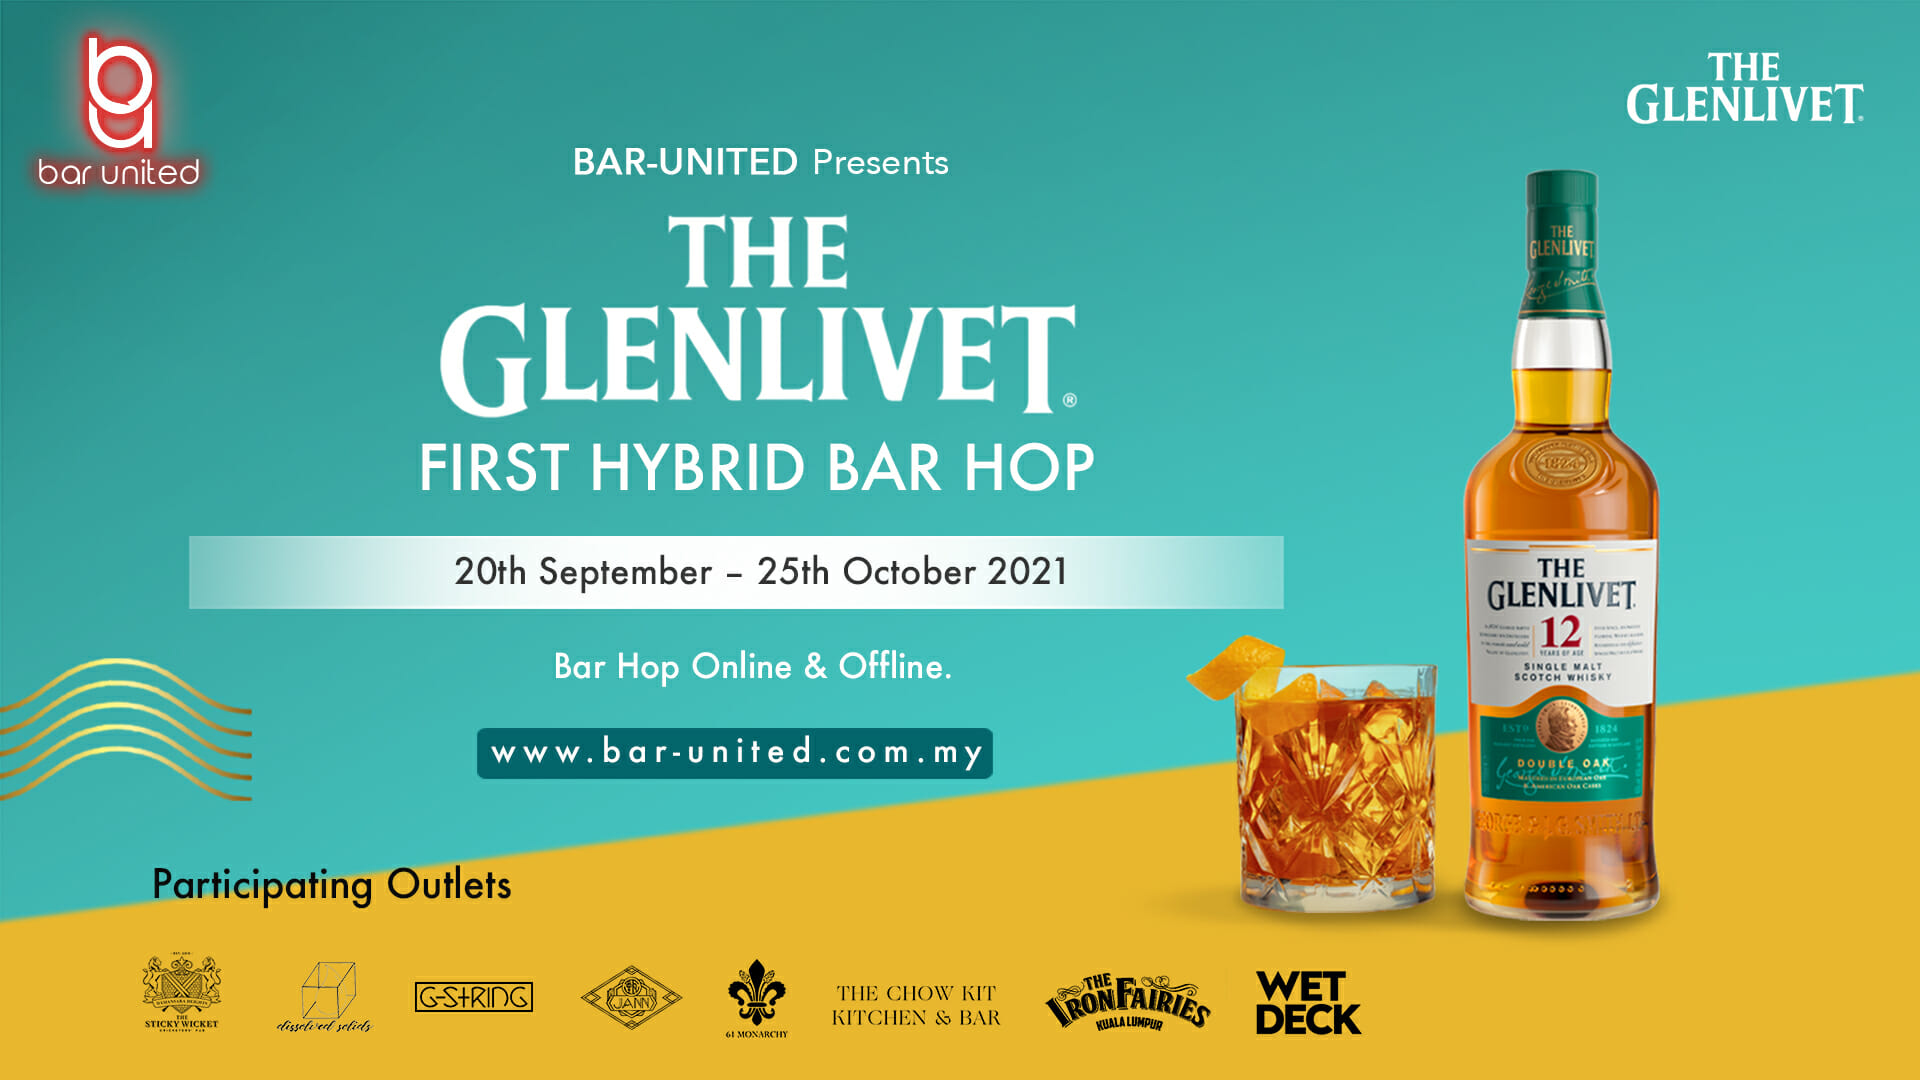 Sit Back, Relax And Enjoy The Glenlivet At Home With Bar-United